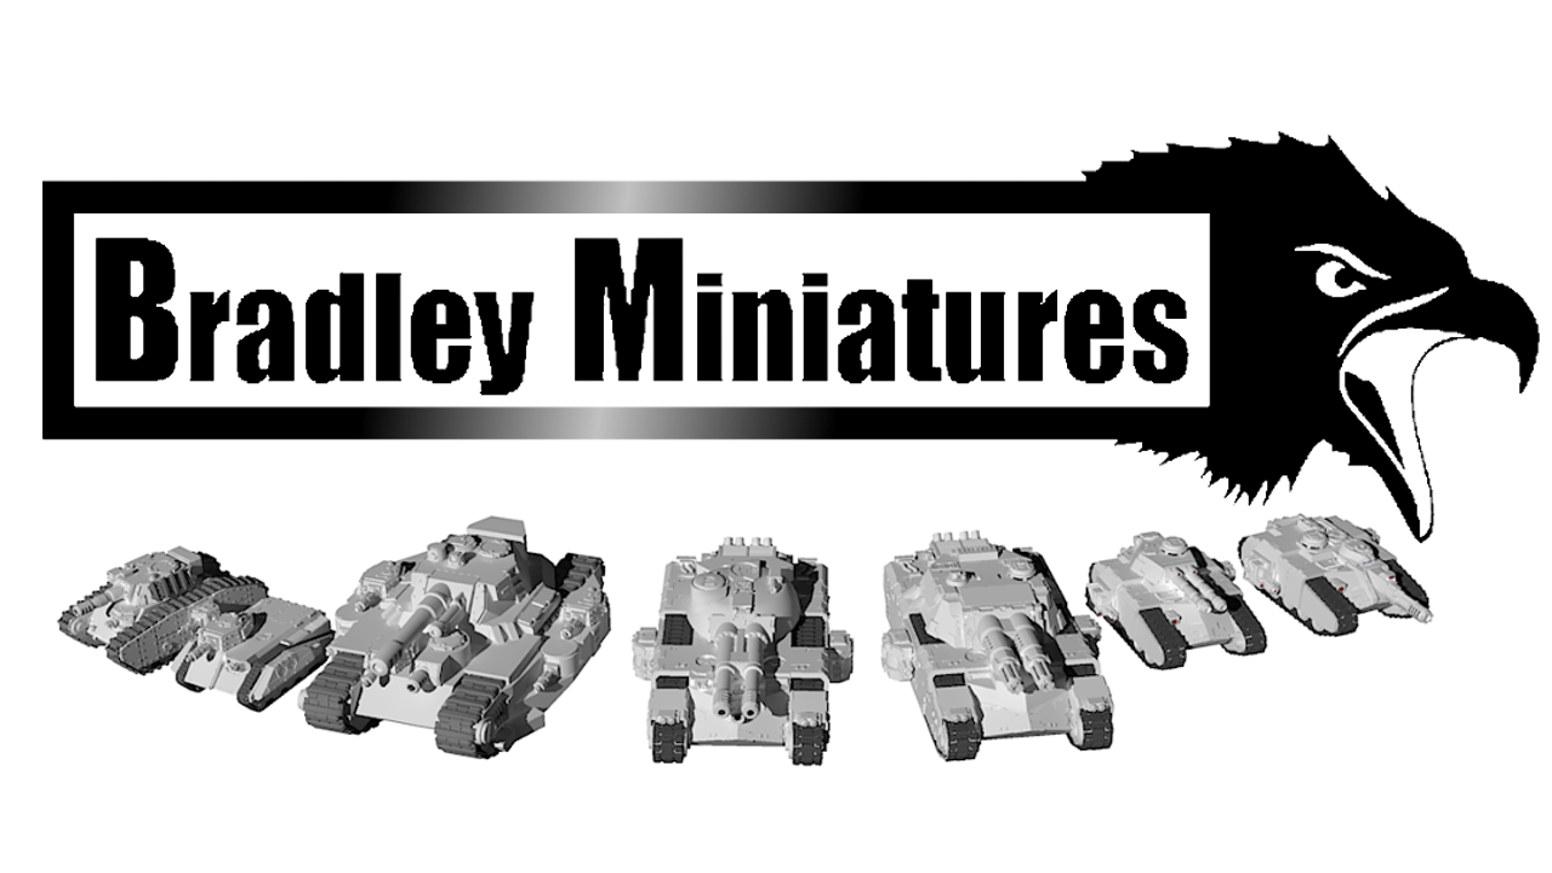 Bradley Miniatures 6mm Legion Vs Colonies Miniatures by